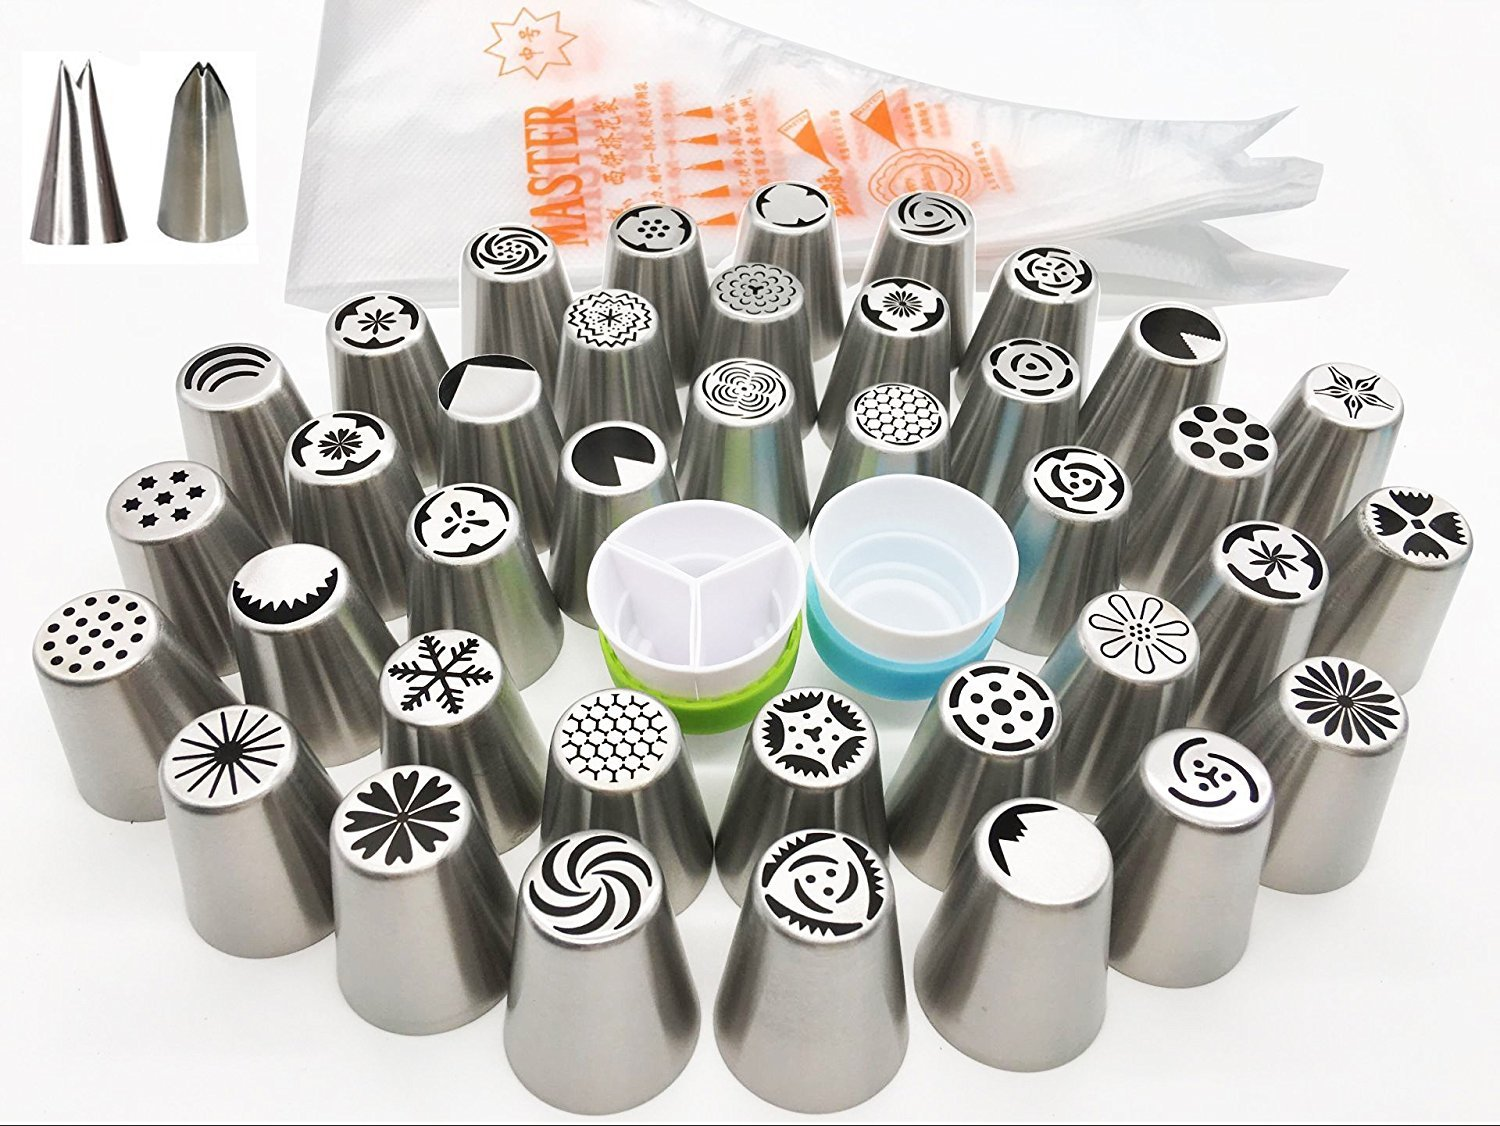 Russian Piping Tips 62 Pcs Set - KOOTIPS Cake/Cupcake Decorating Icing Tips - 37 Extra Large Stainless Steel Pastry Nozzle Tips and 2 Leaf Tips, 2 XL Coupler and a Clear Rush Kootips-1-52